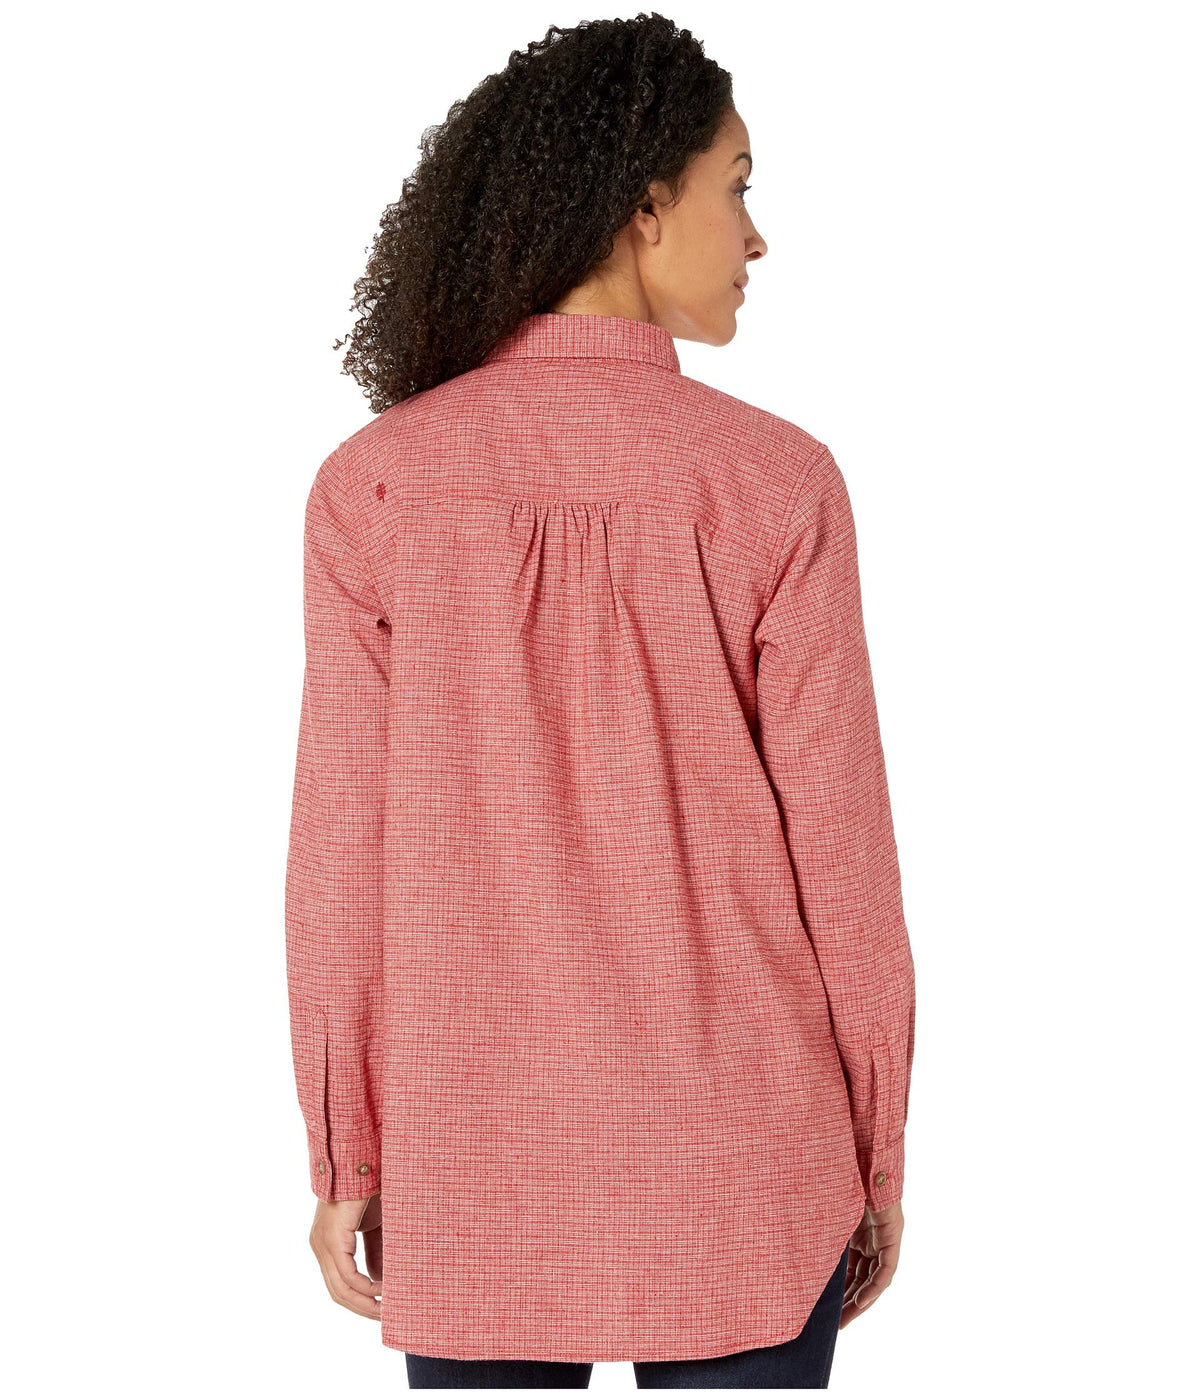 Hemp Blend Long Sleeve